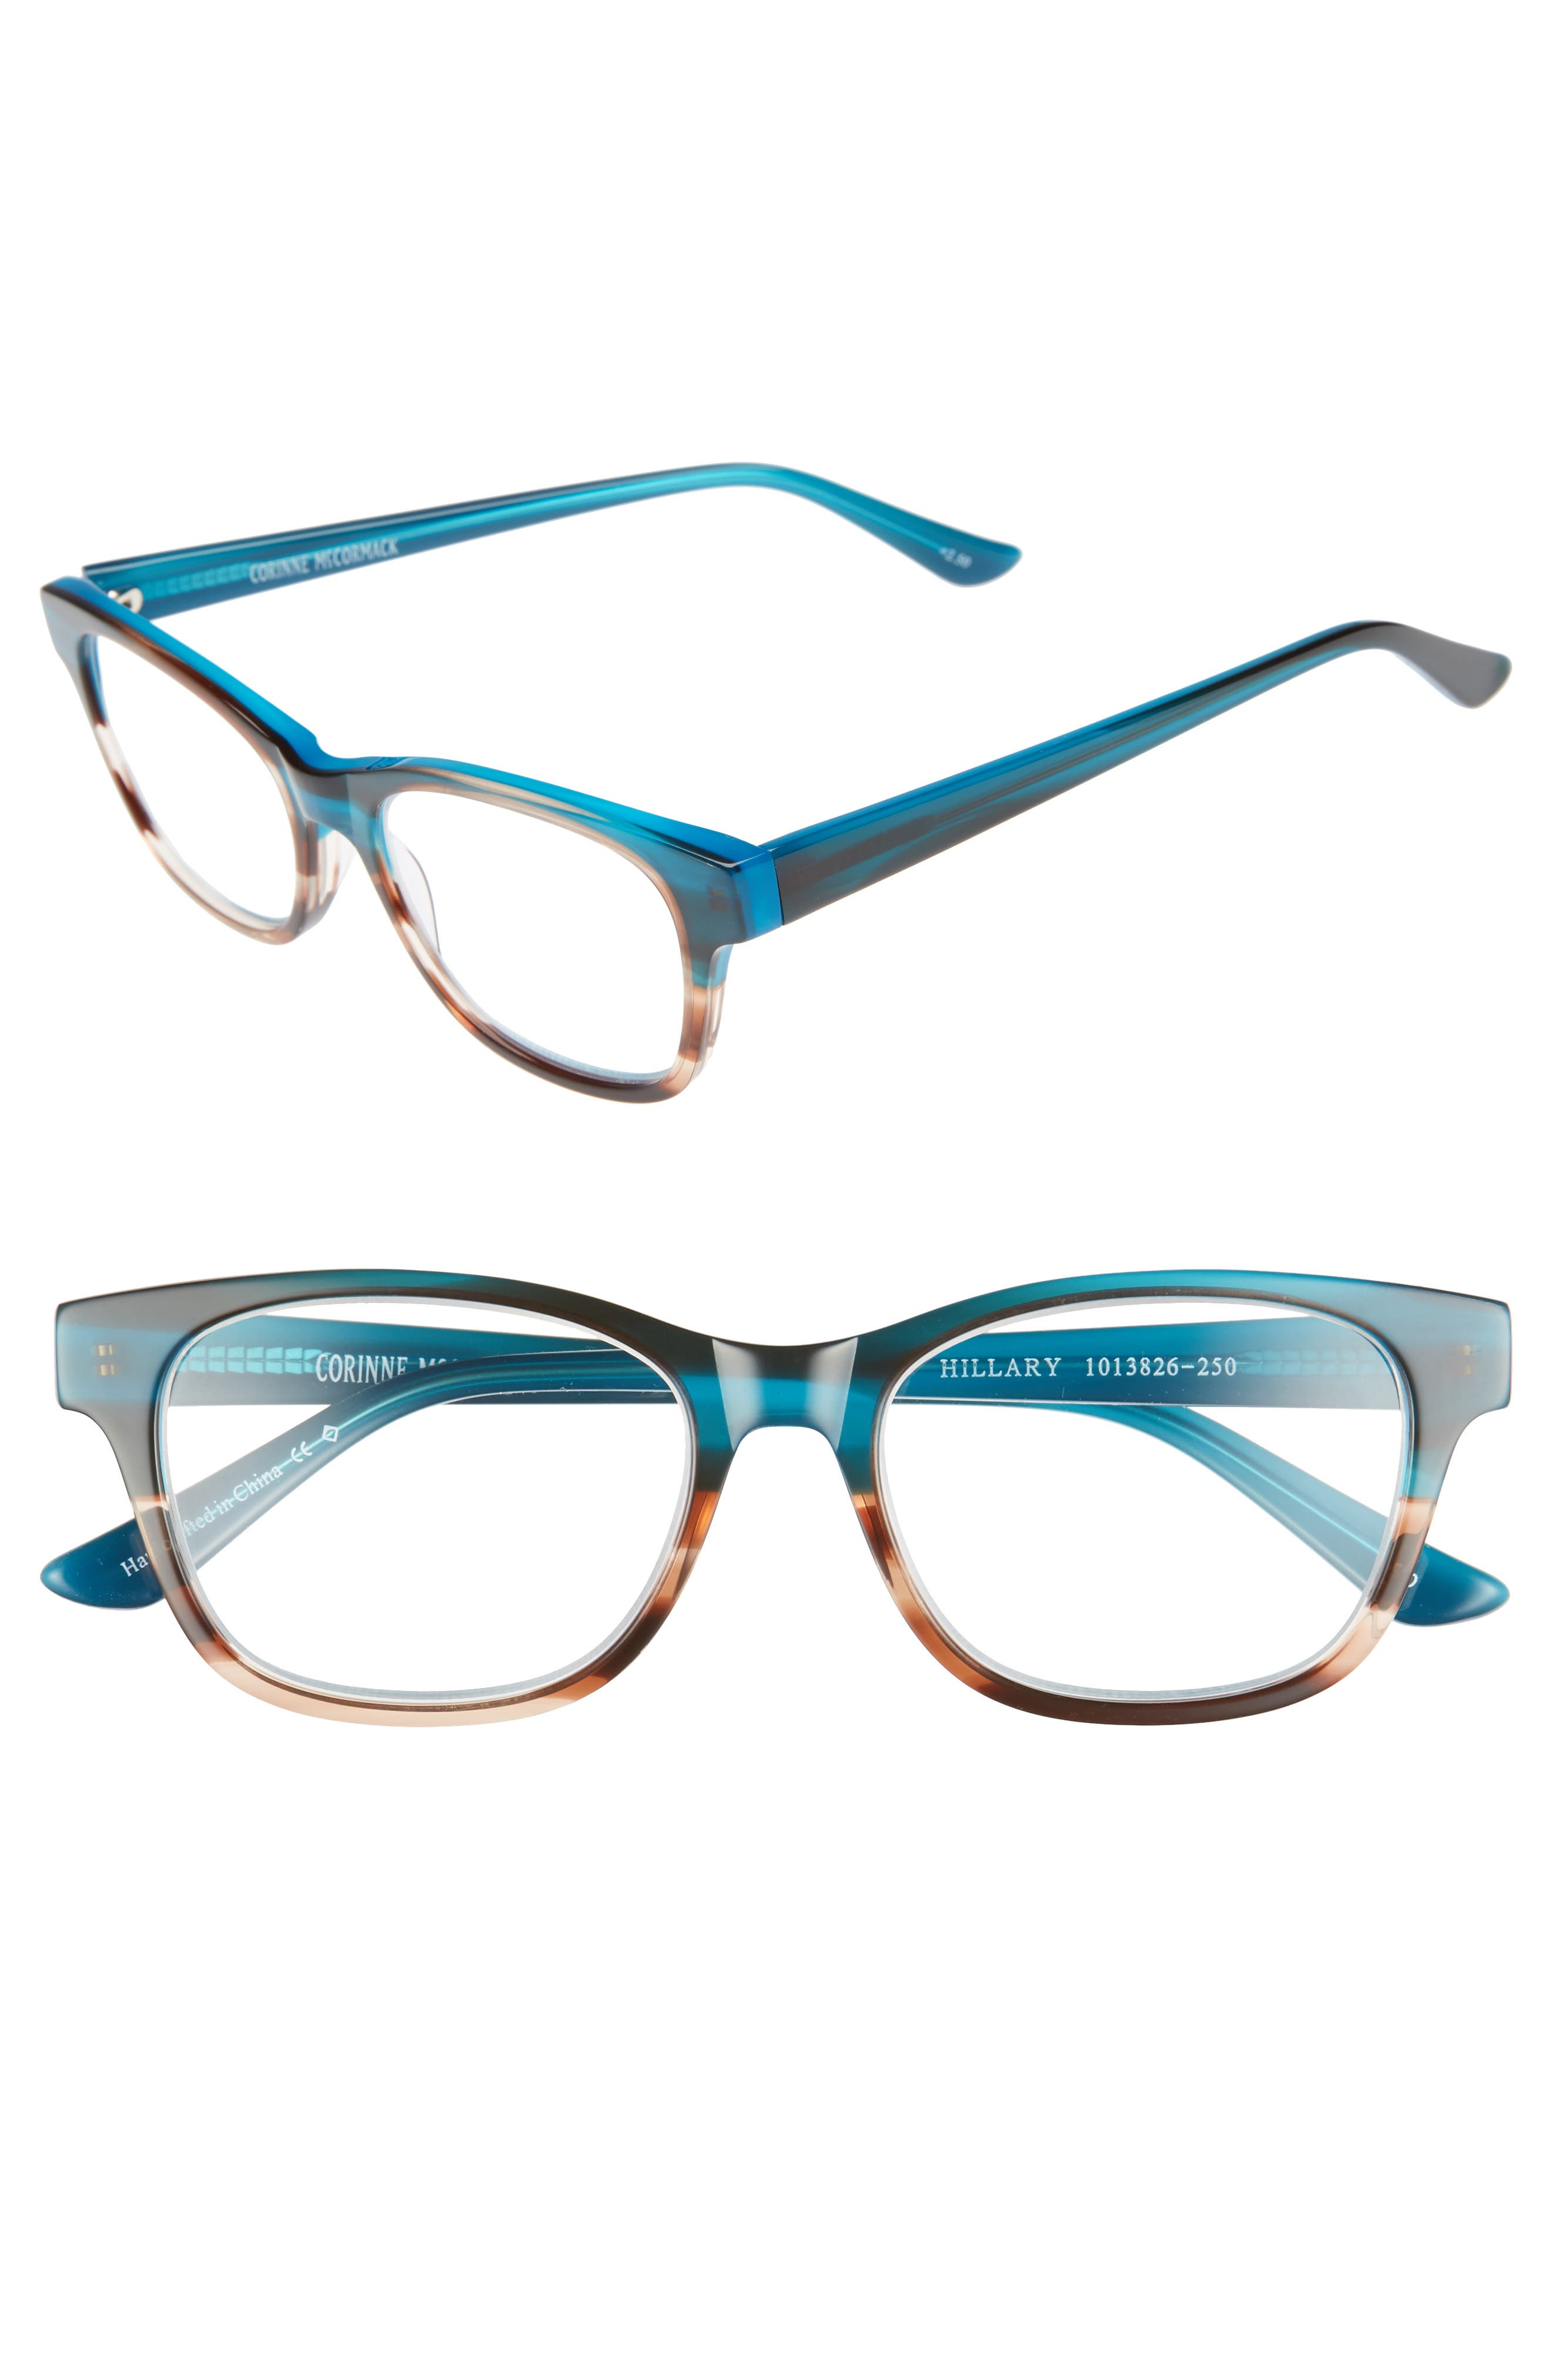 Corinne McCormack Hillary 50mm Reading Glasses